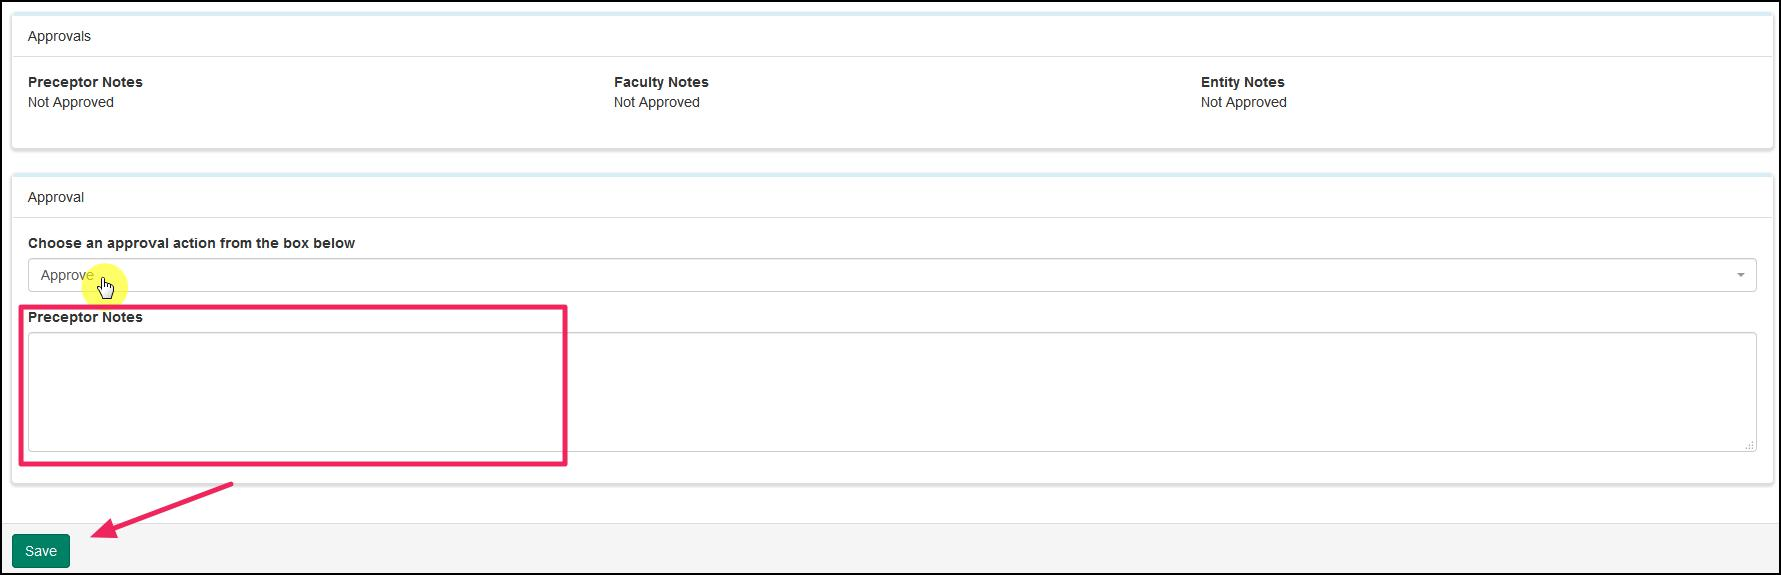 image bottom of Case Log highlighting Approval choices, notes field, and Save button